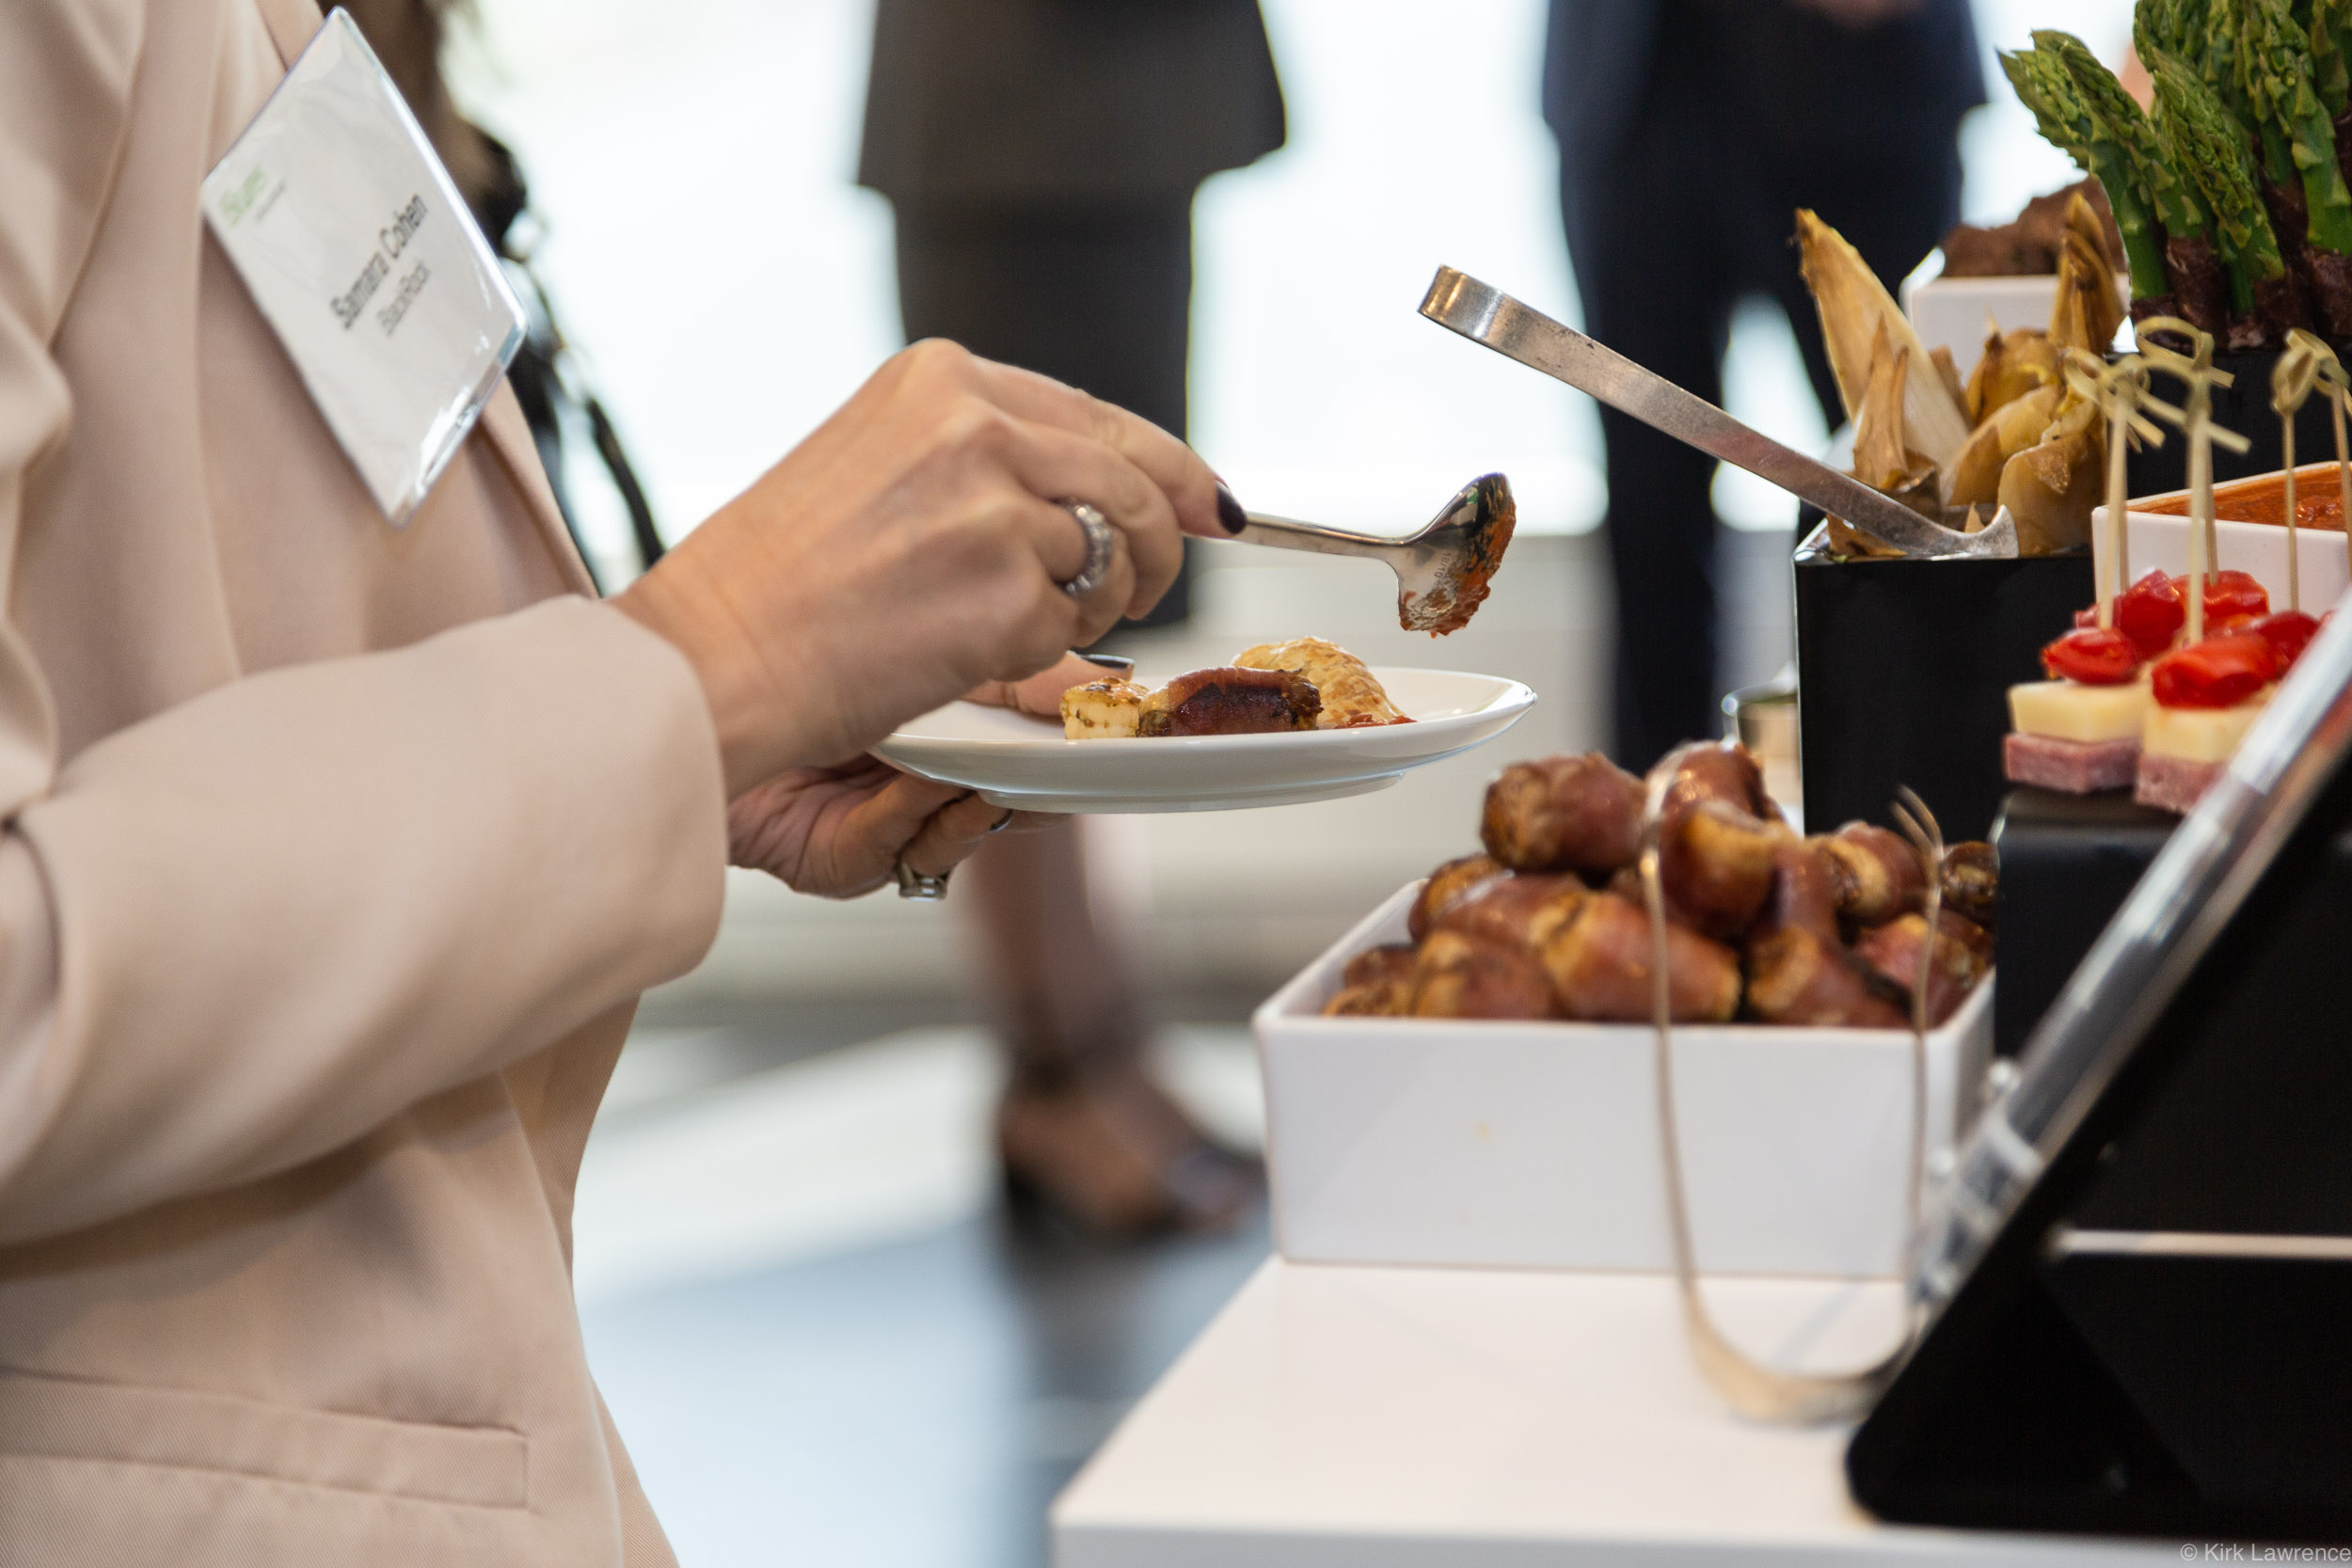 event_catered_food_appetizers_woman.jpg